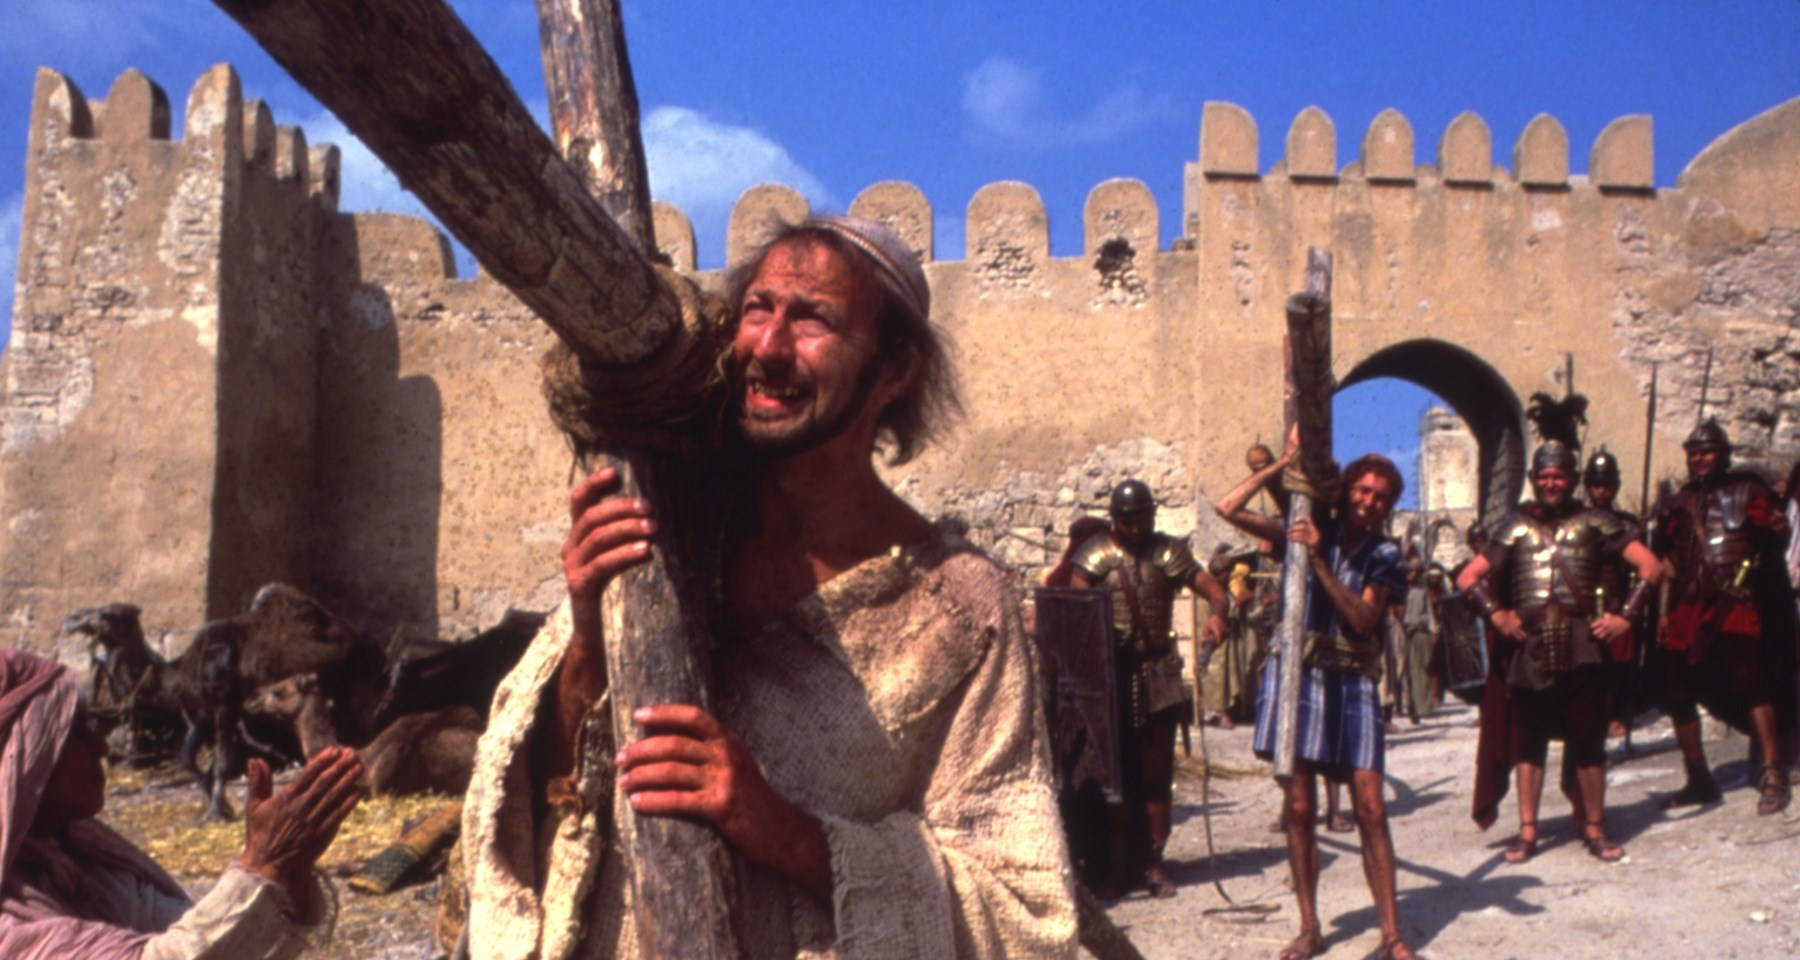 Life_of_Brian_Production_Image_2.jpg